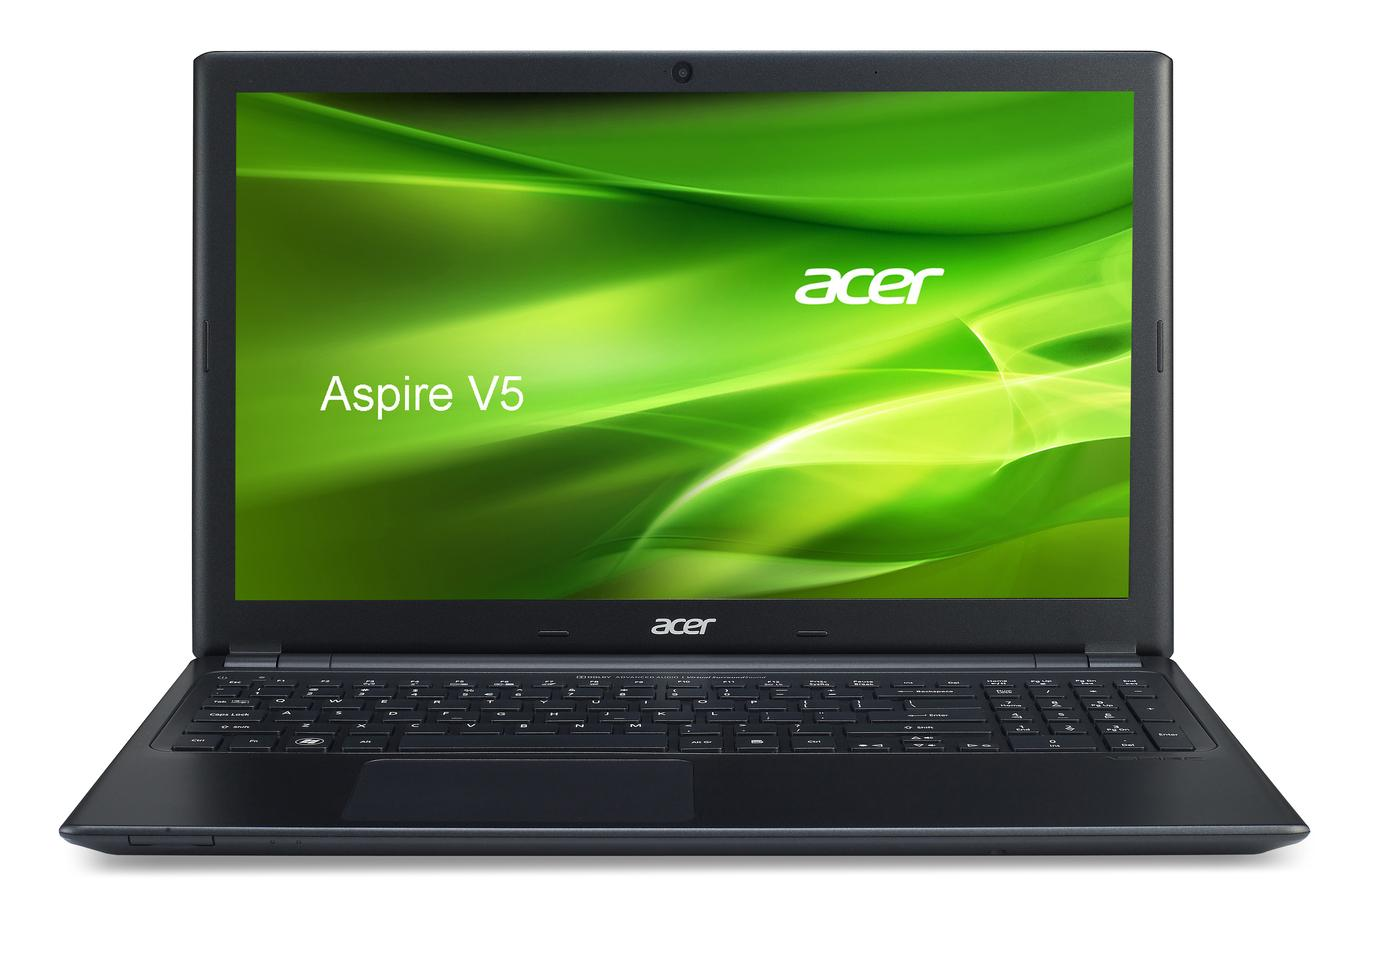 The new Aspire V5 in black